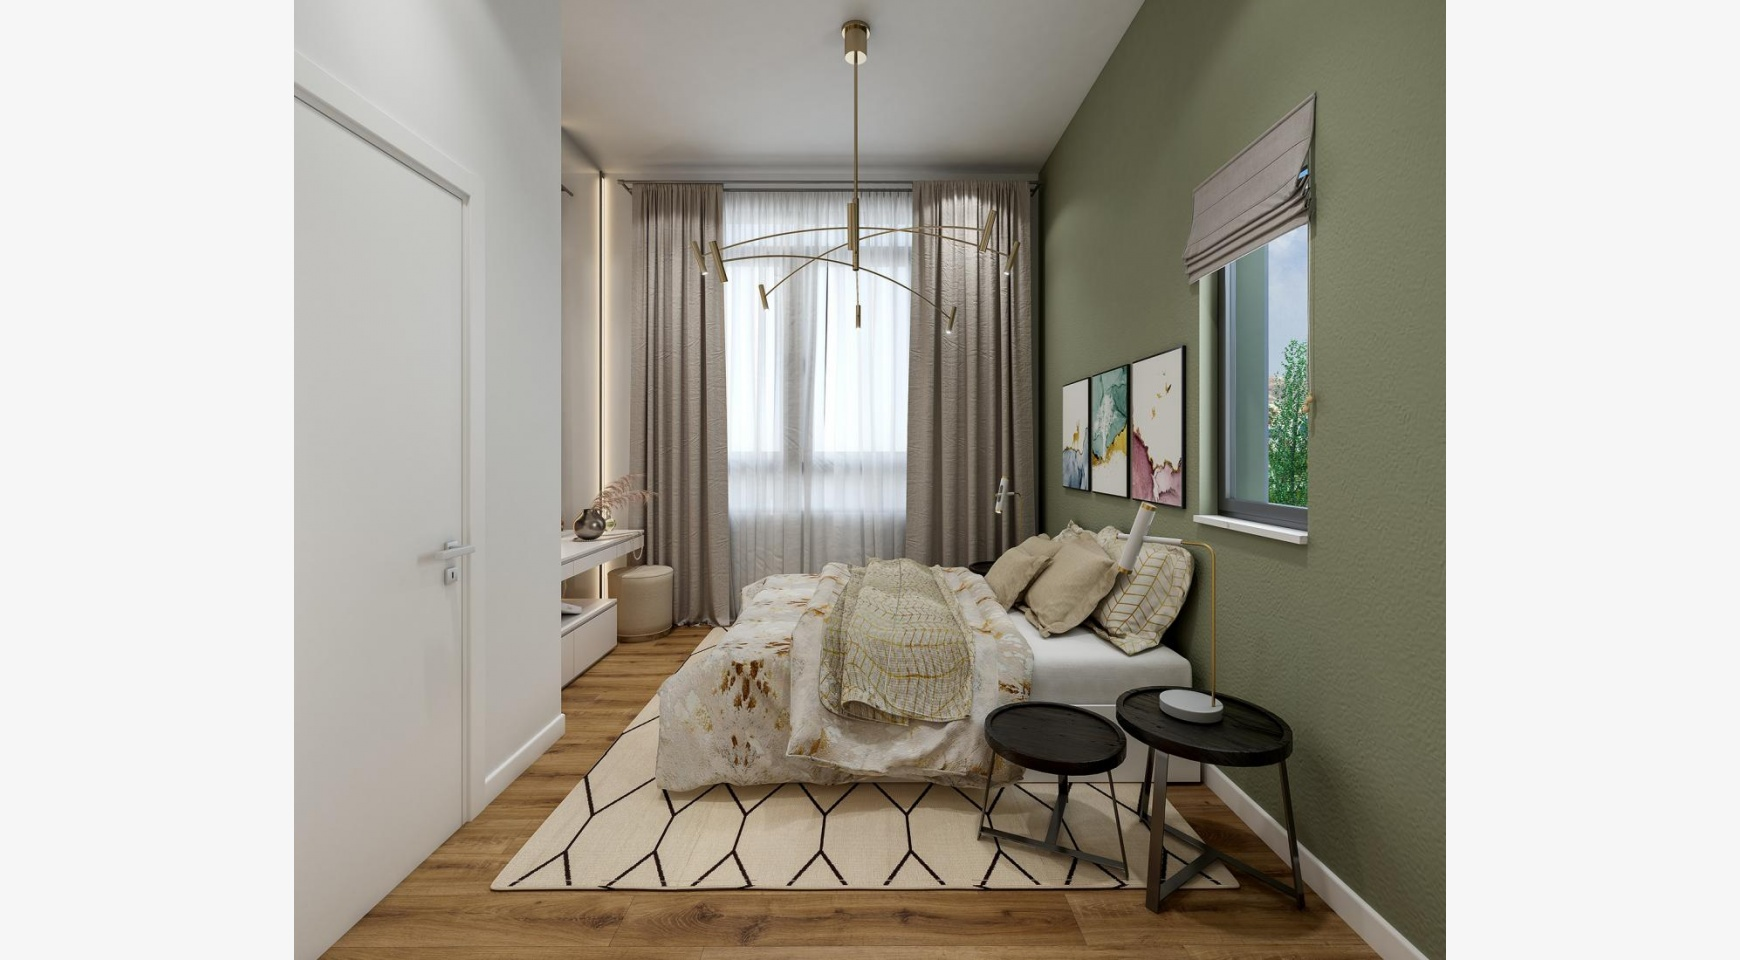 Urban City Residences, Block B. New Spacious 2 Bedroom Apartment 202 in the City Centre - 5